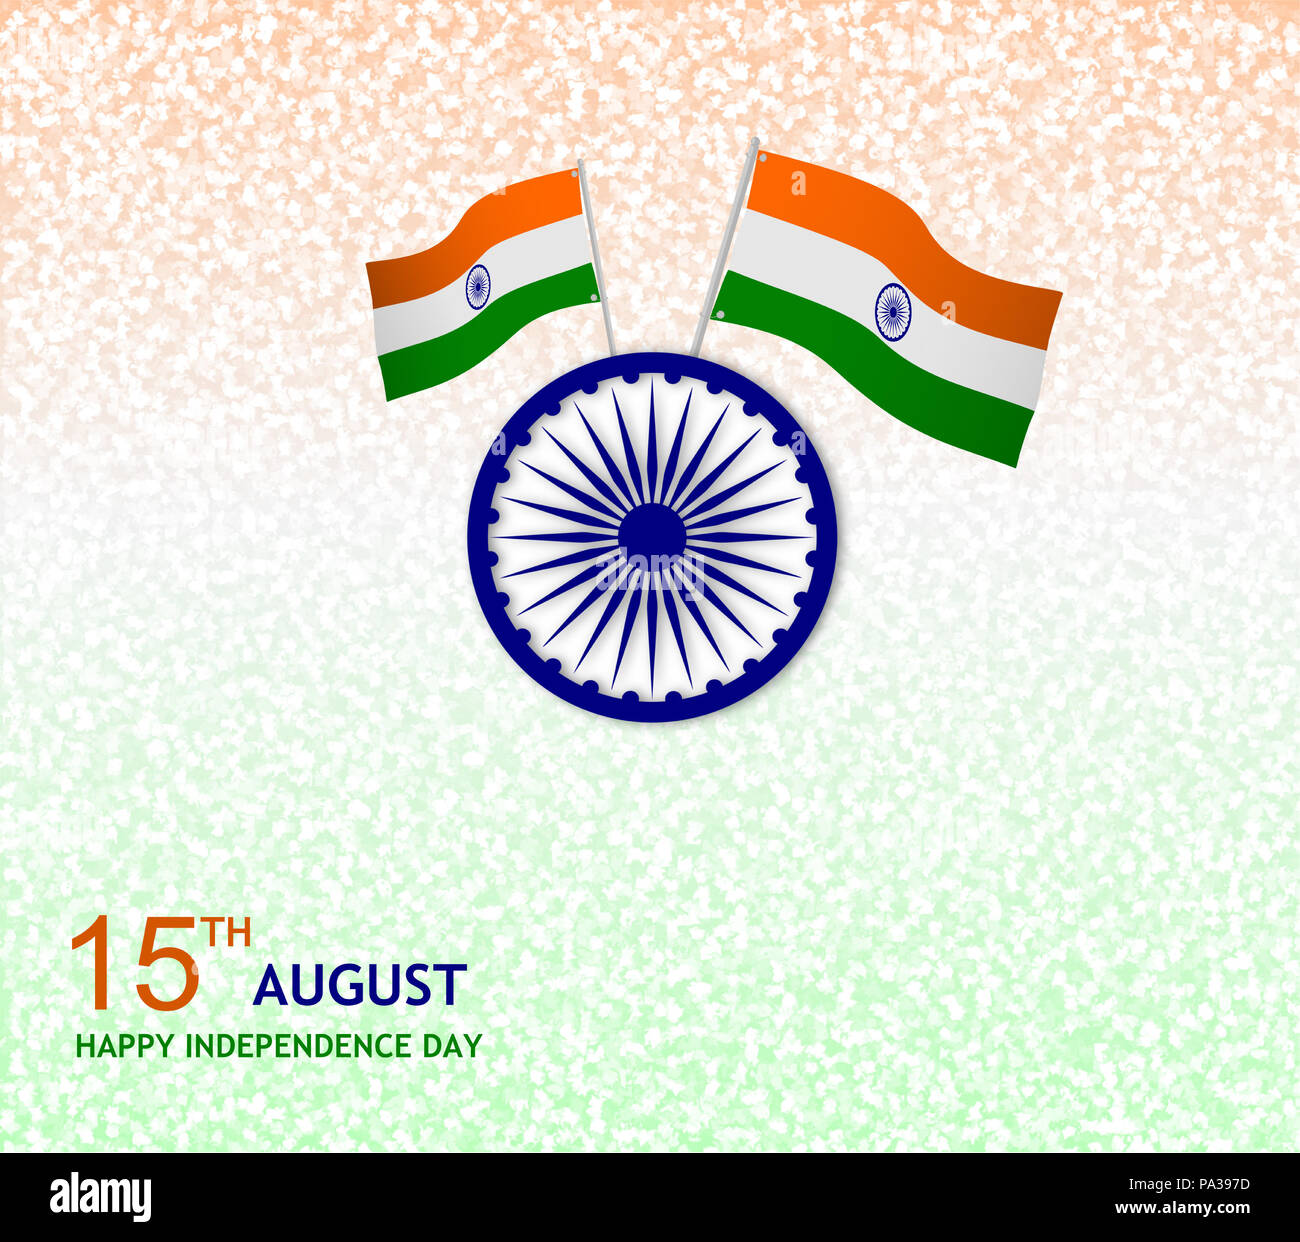 Happy independence day india postcard Stock Photo: 212744097